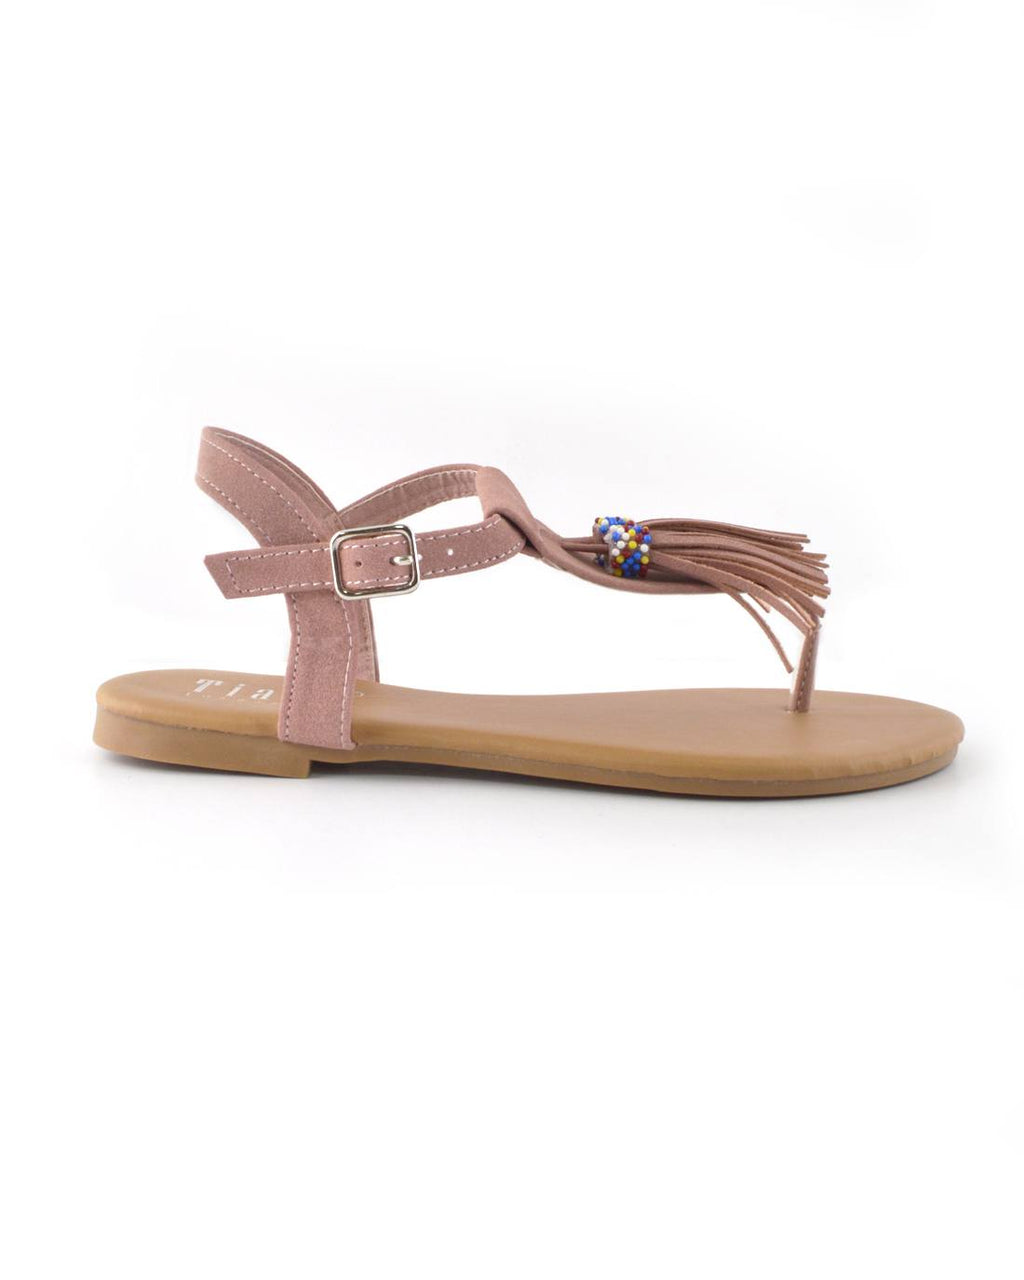 Tassel and Bead Embellished Flat Sandals - Happy-Go-Cart